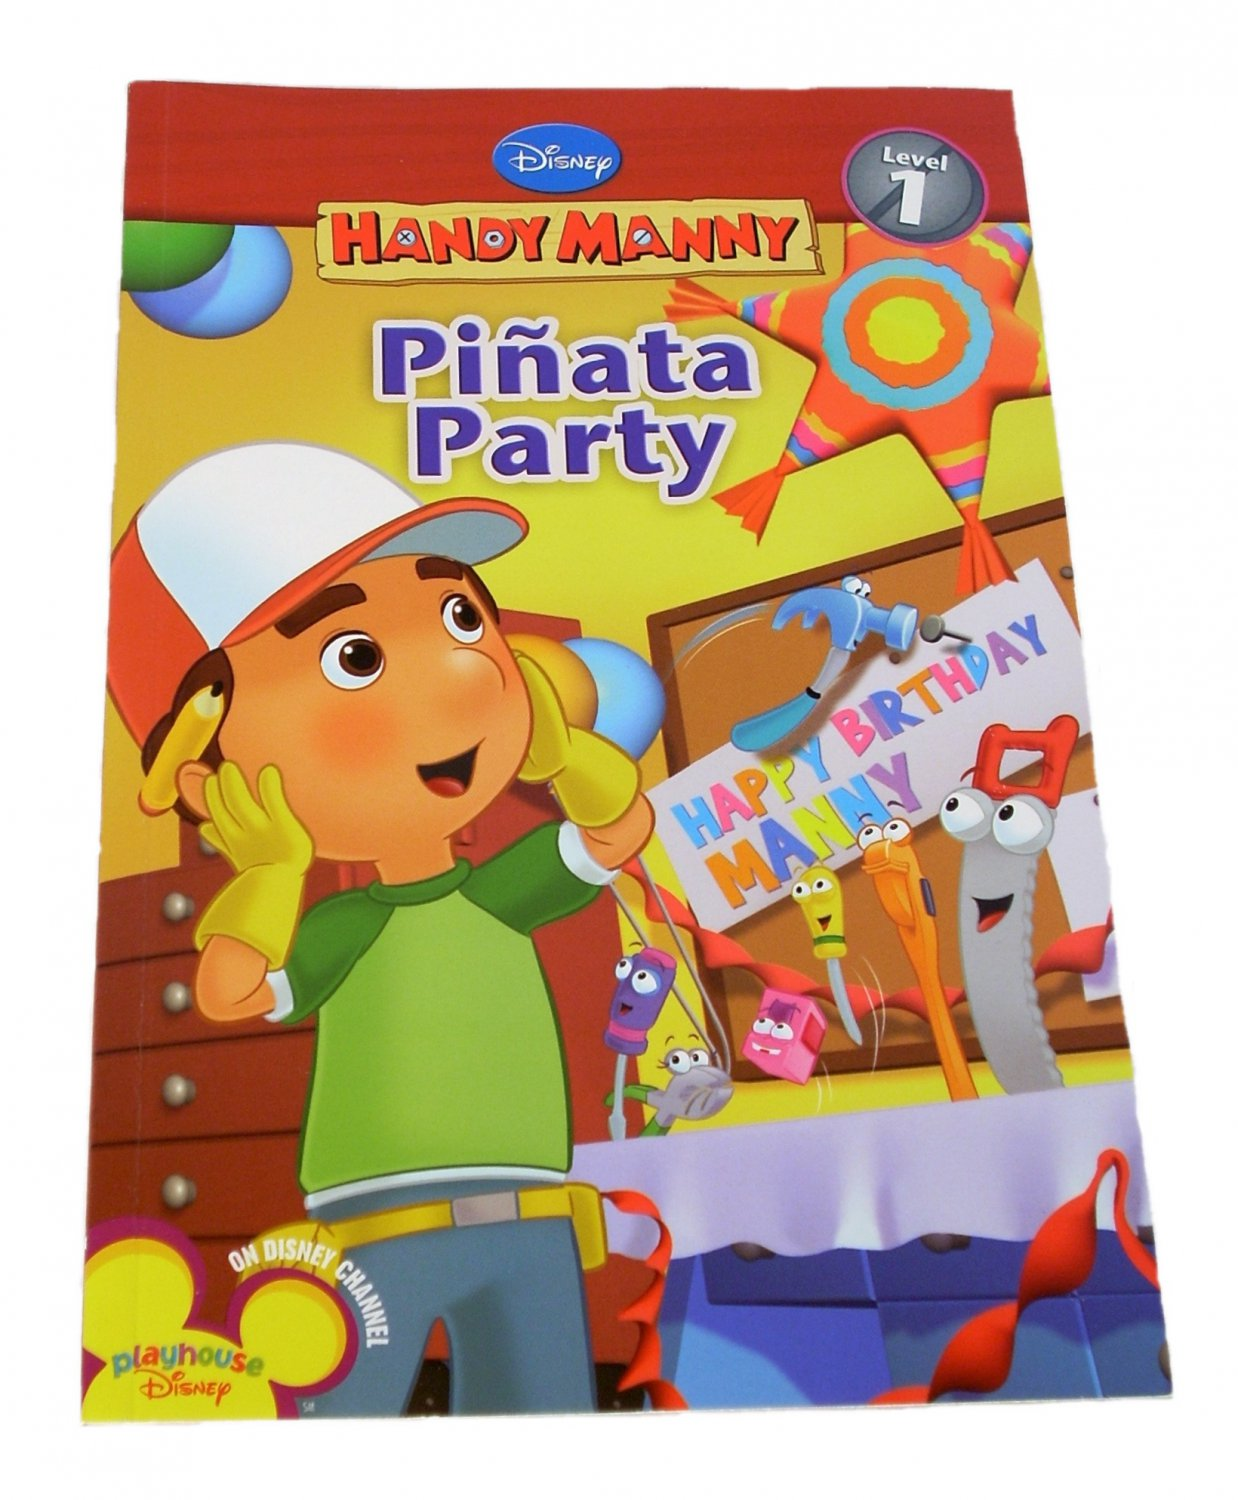 Disney's Handy Manny Pinata Party Level 1 by Susan Ring 2008 Paperback